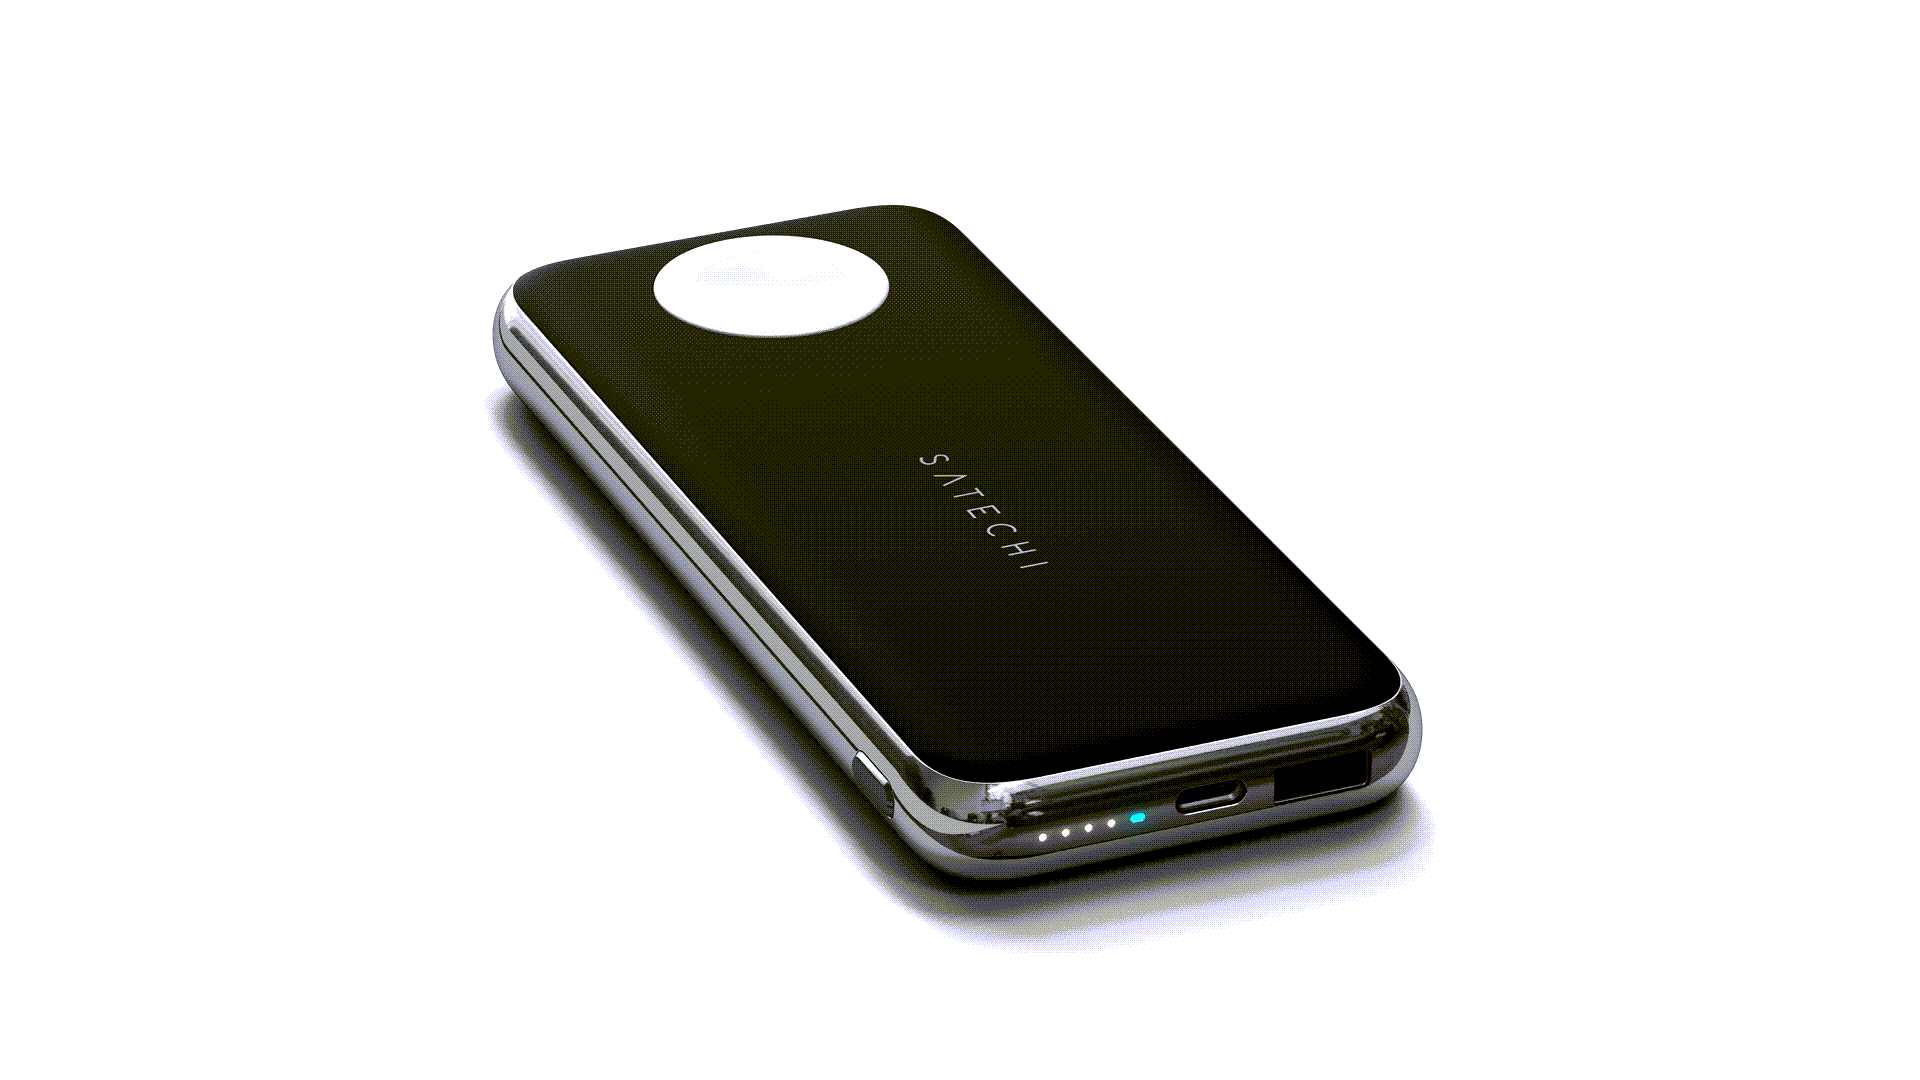 A closeup of the Satechi Wireless Power Bank showing an Apple Watch charger.